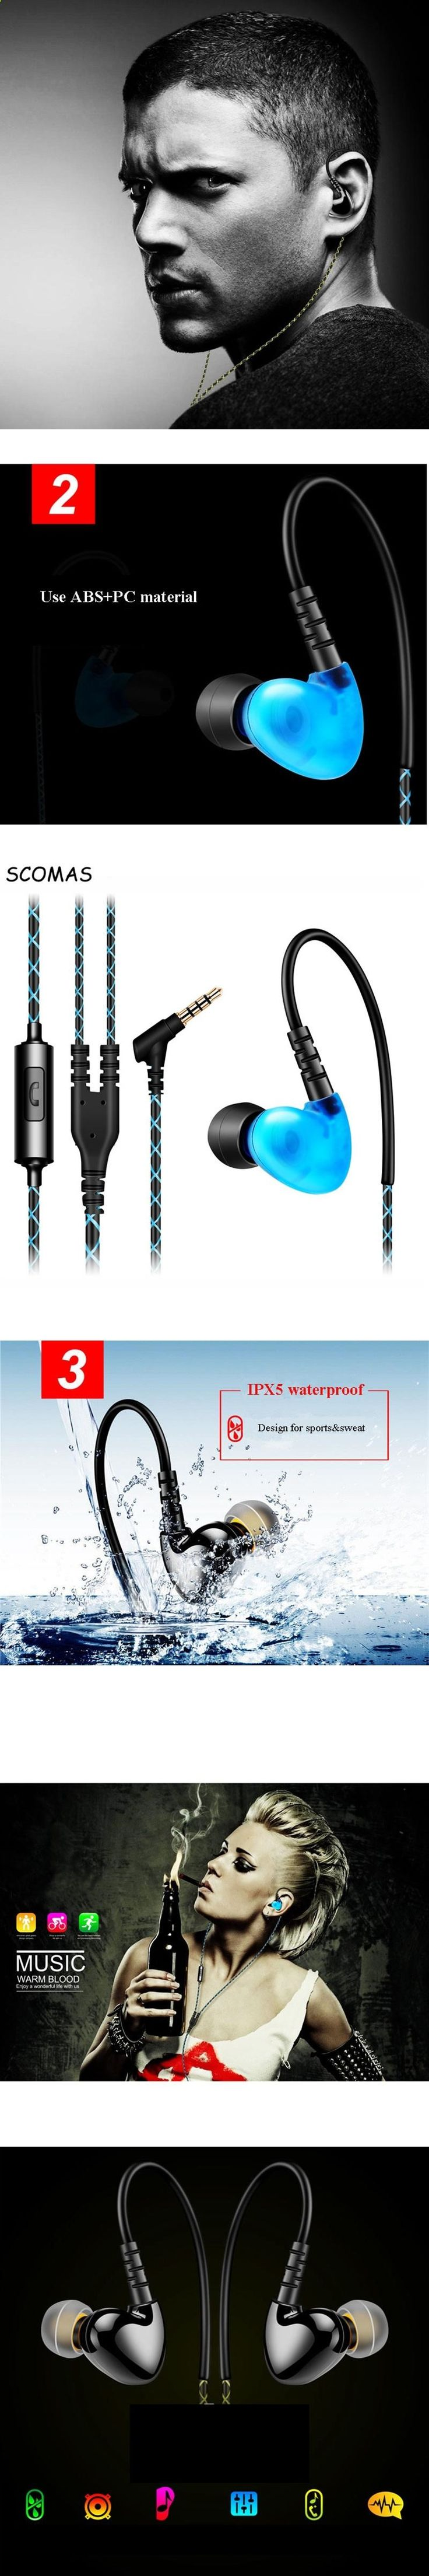 Sports Headphones - SCOMAS Noise Isolating Sweatproof Sport Headphones Earbuds Earphones with Mic Earhook Wired Stereo Earpods for MOBILE PHONE - If you usually go out to run, walk or any other sport in which you usually carry music to accompany or motivate you, we have selected 13 models of sports headphones that we consider among the best in the market for different aspects, from comfort to use to design, sound quality or value for money, so that you find variety and can adjust the m...